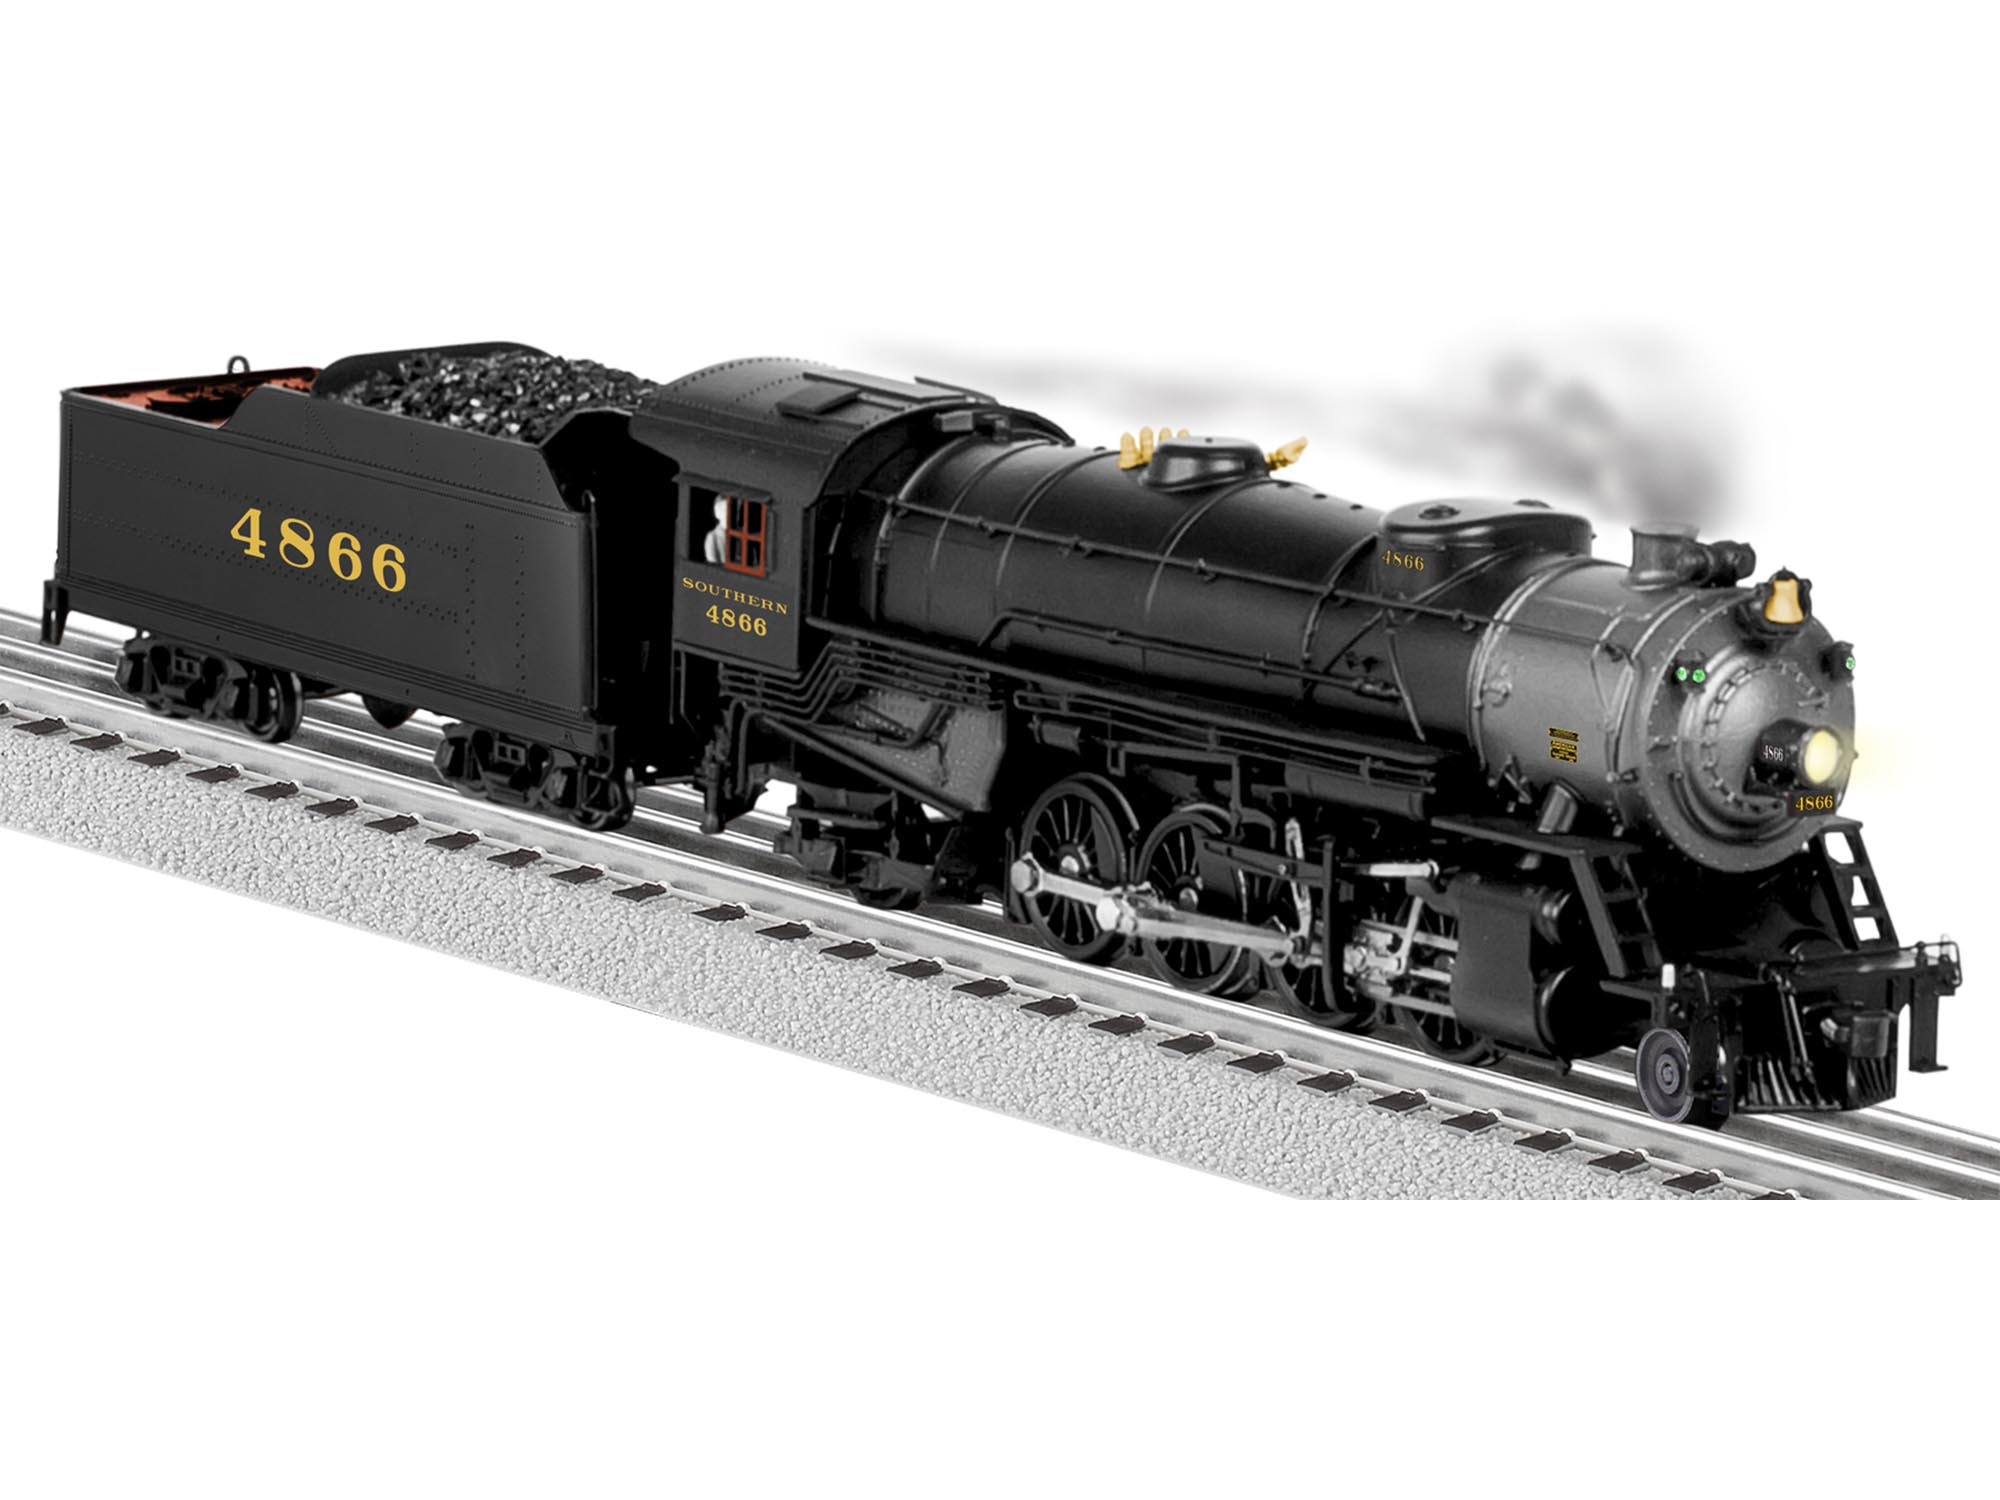 6-81181 SOUTHERN LEGACY MIKADO 2-8-2 STEAM LOCOMOTIVE #4866